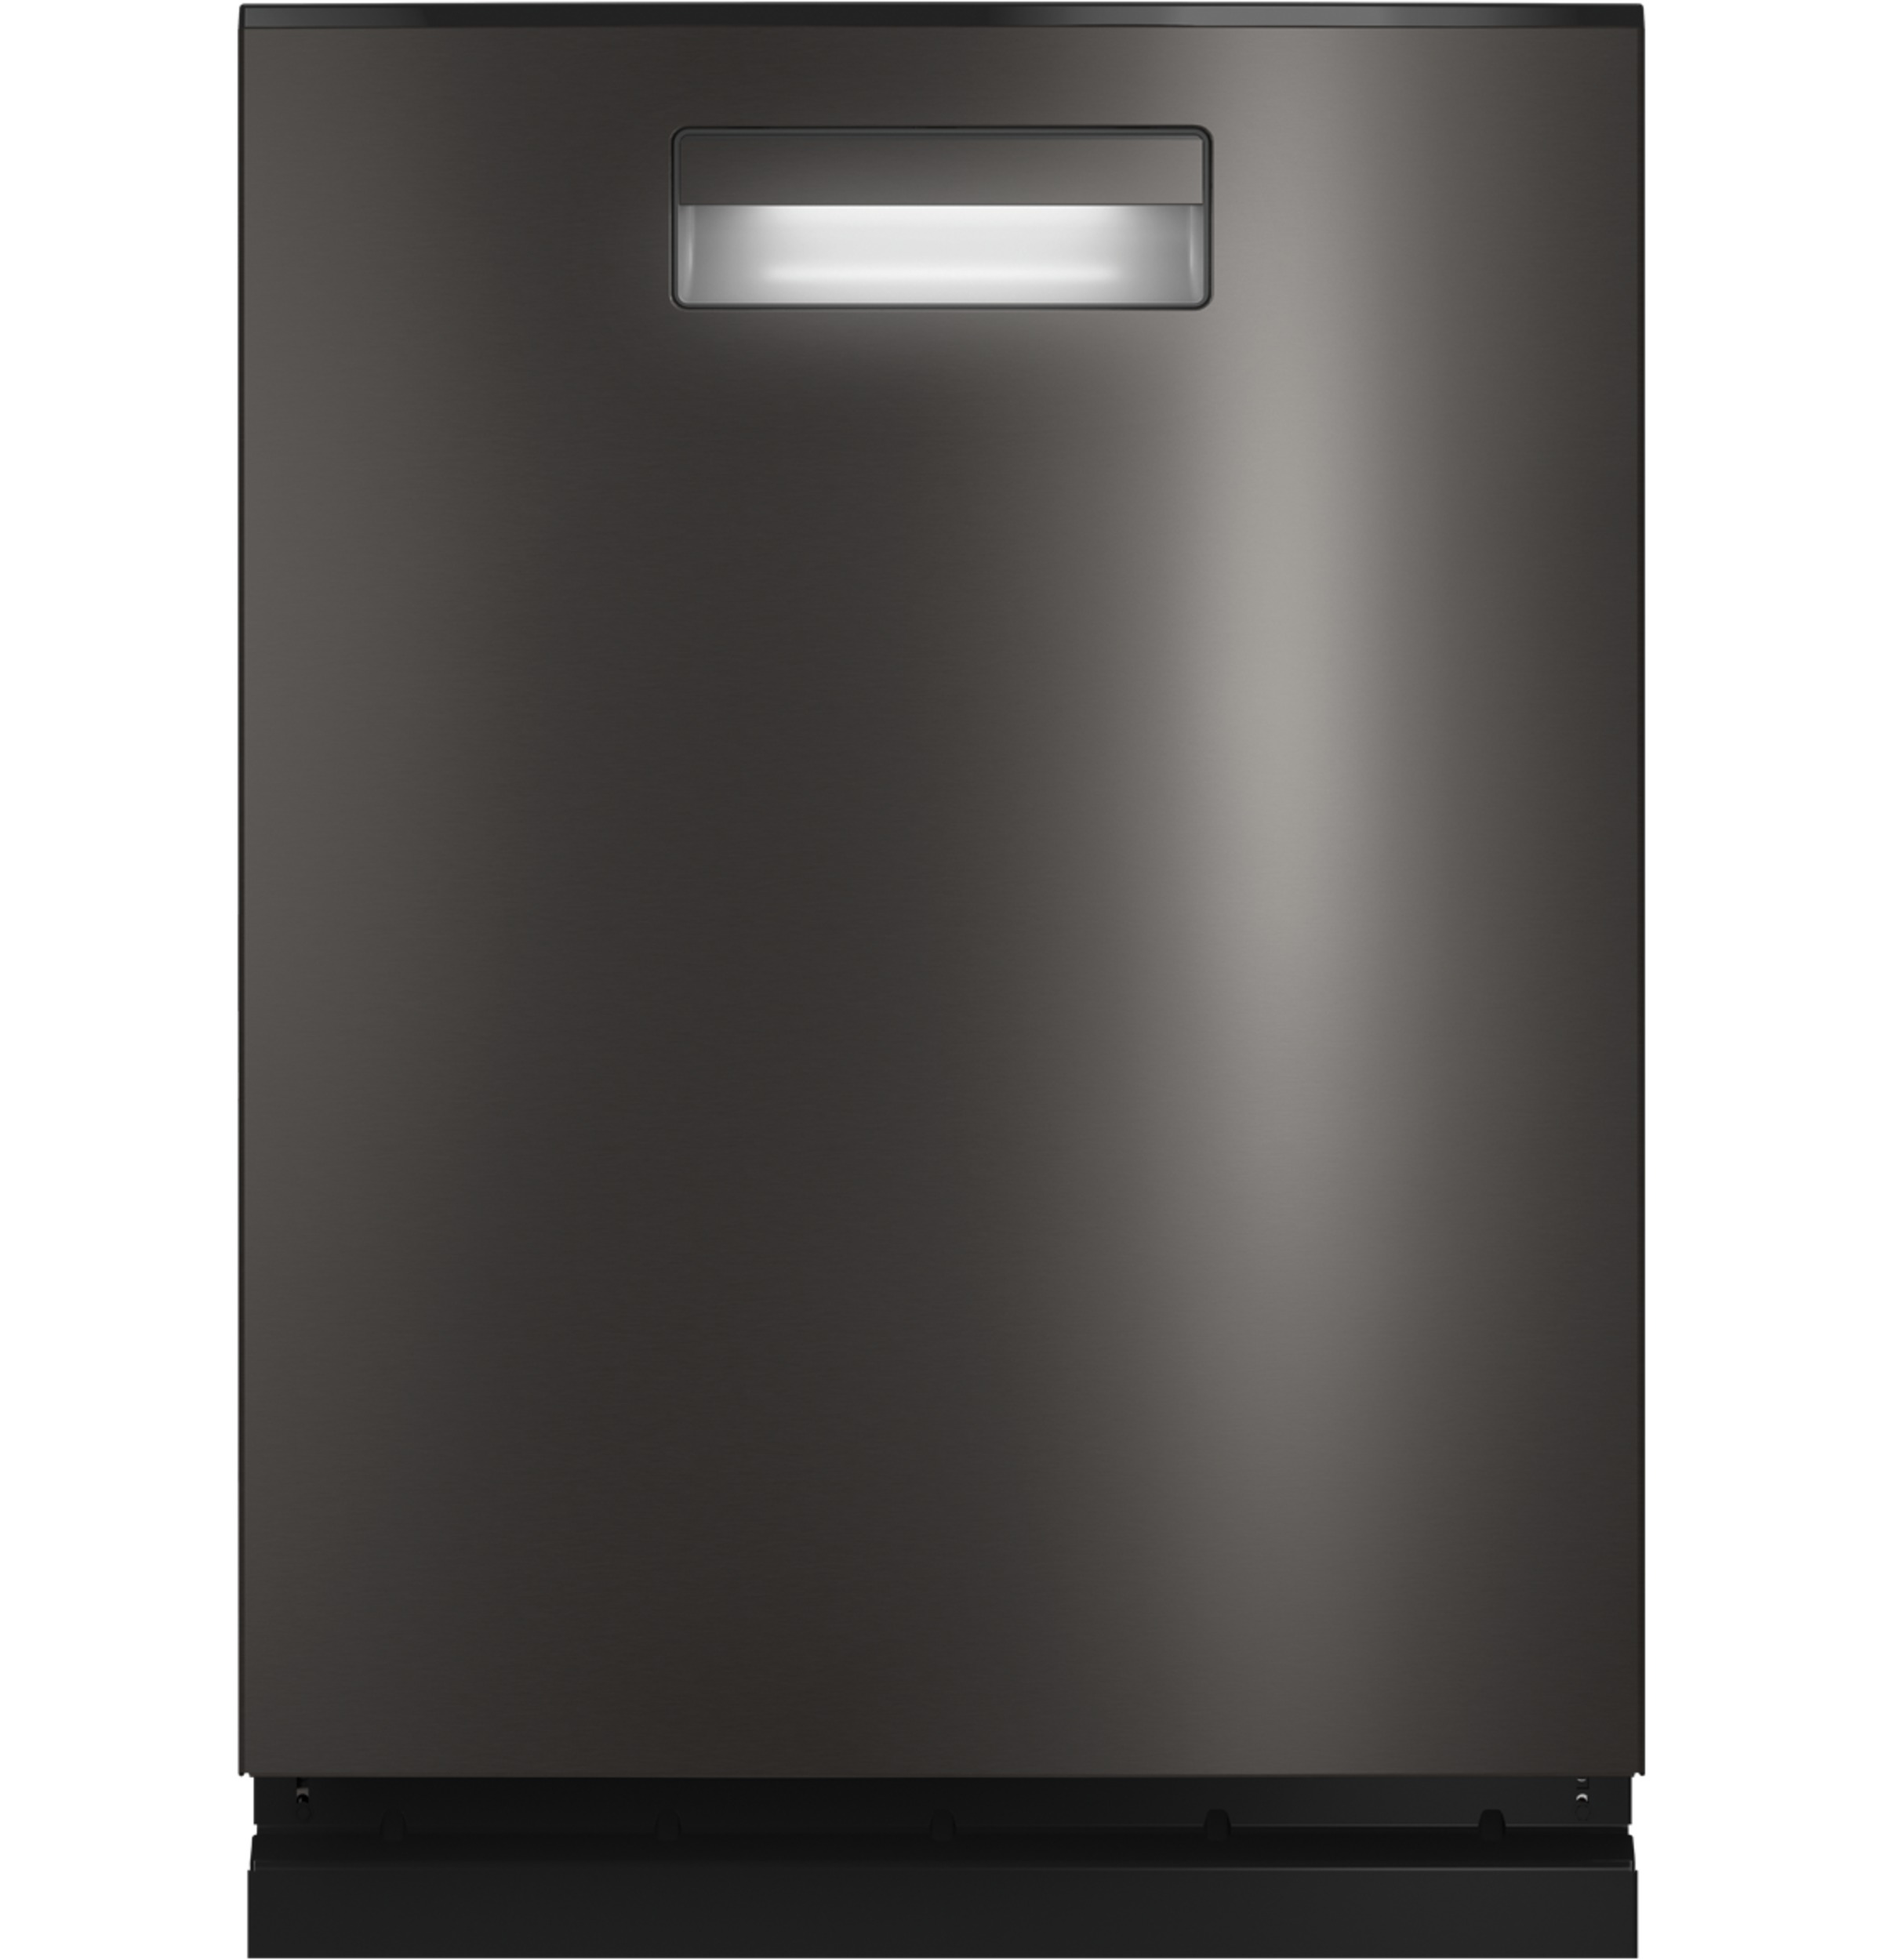 Model: QDP555SBNTS | Haier Haier Smart Top Control with Stainless Steel Interior Dishwasher with Sanitize Cycle